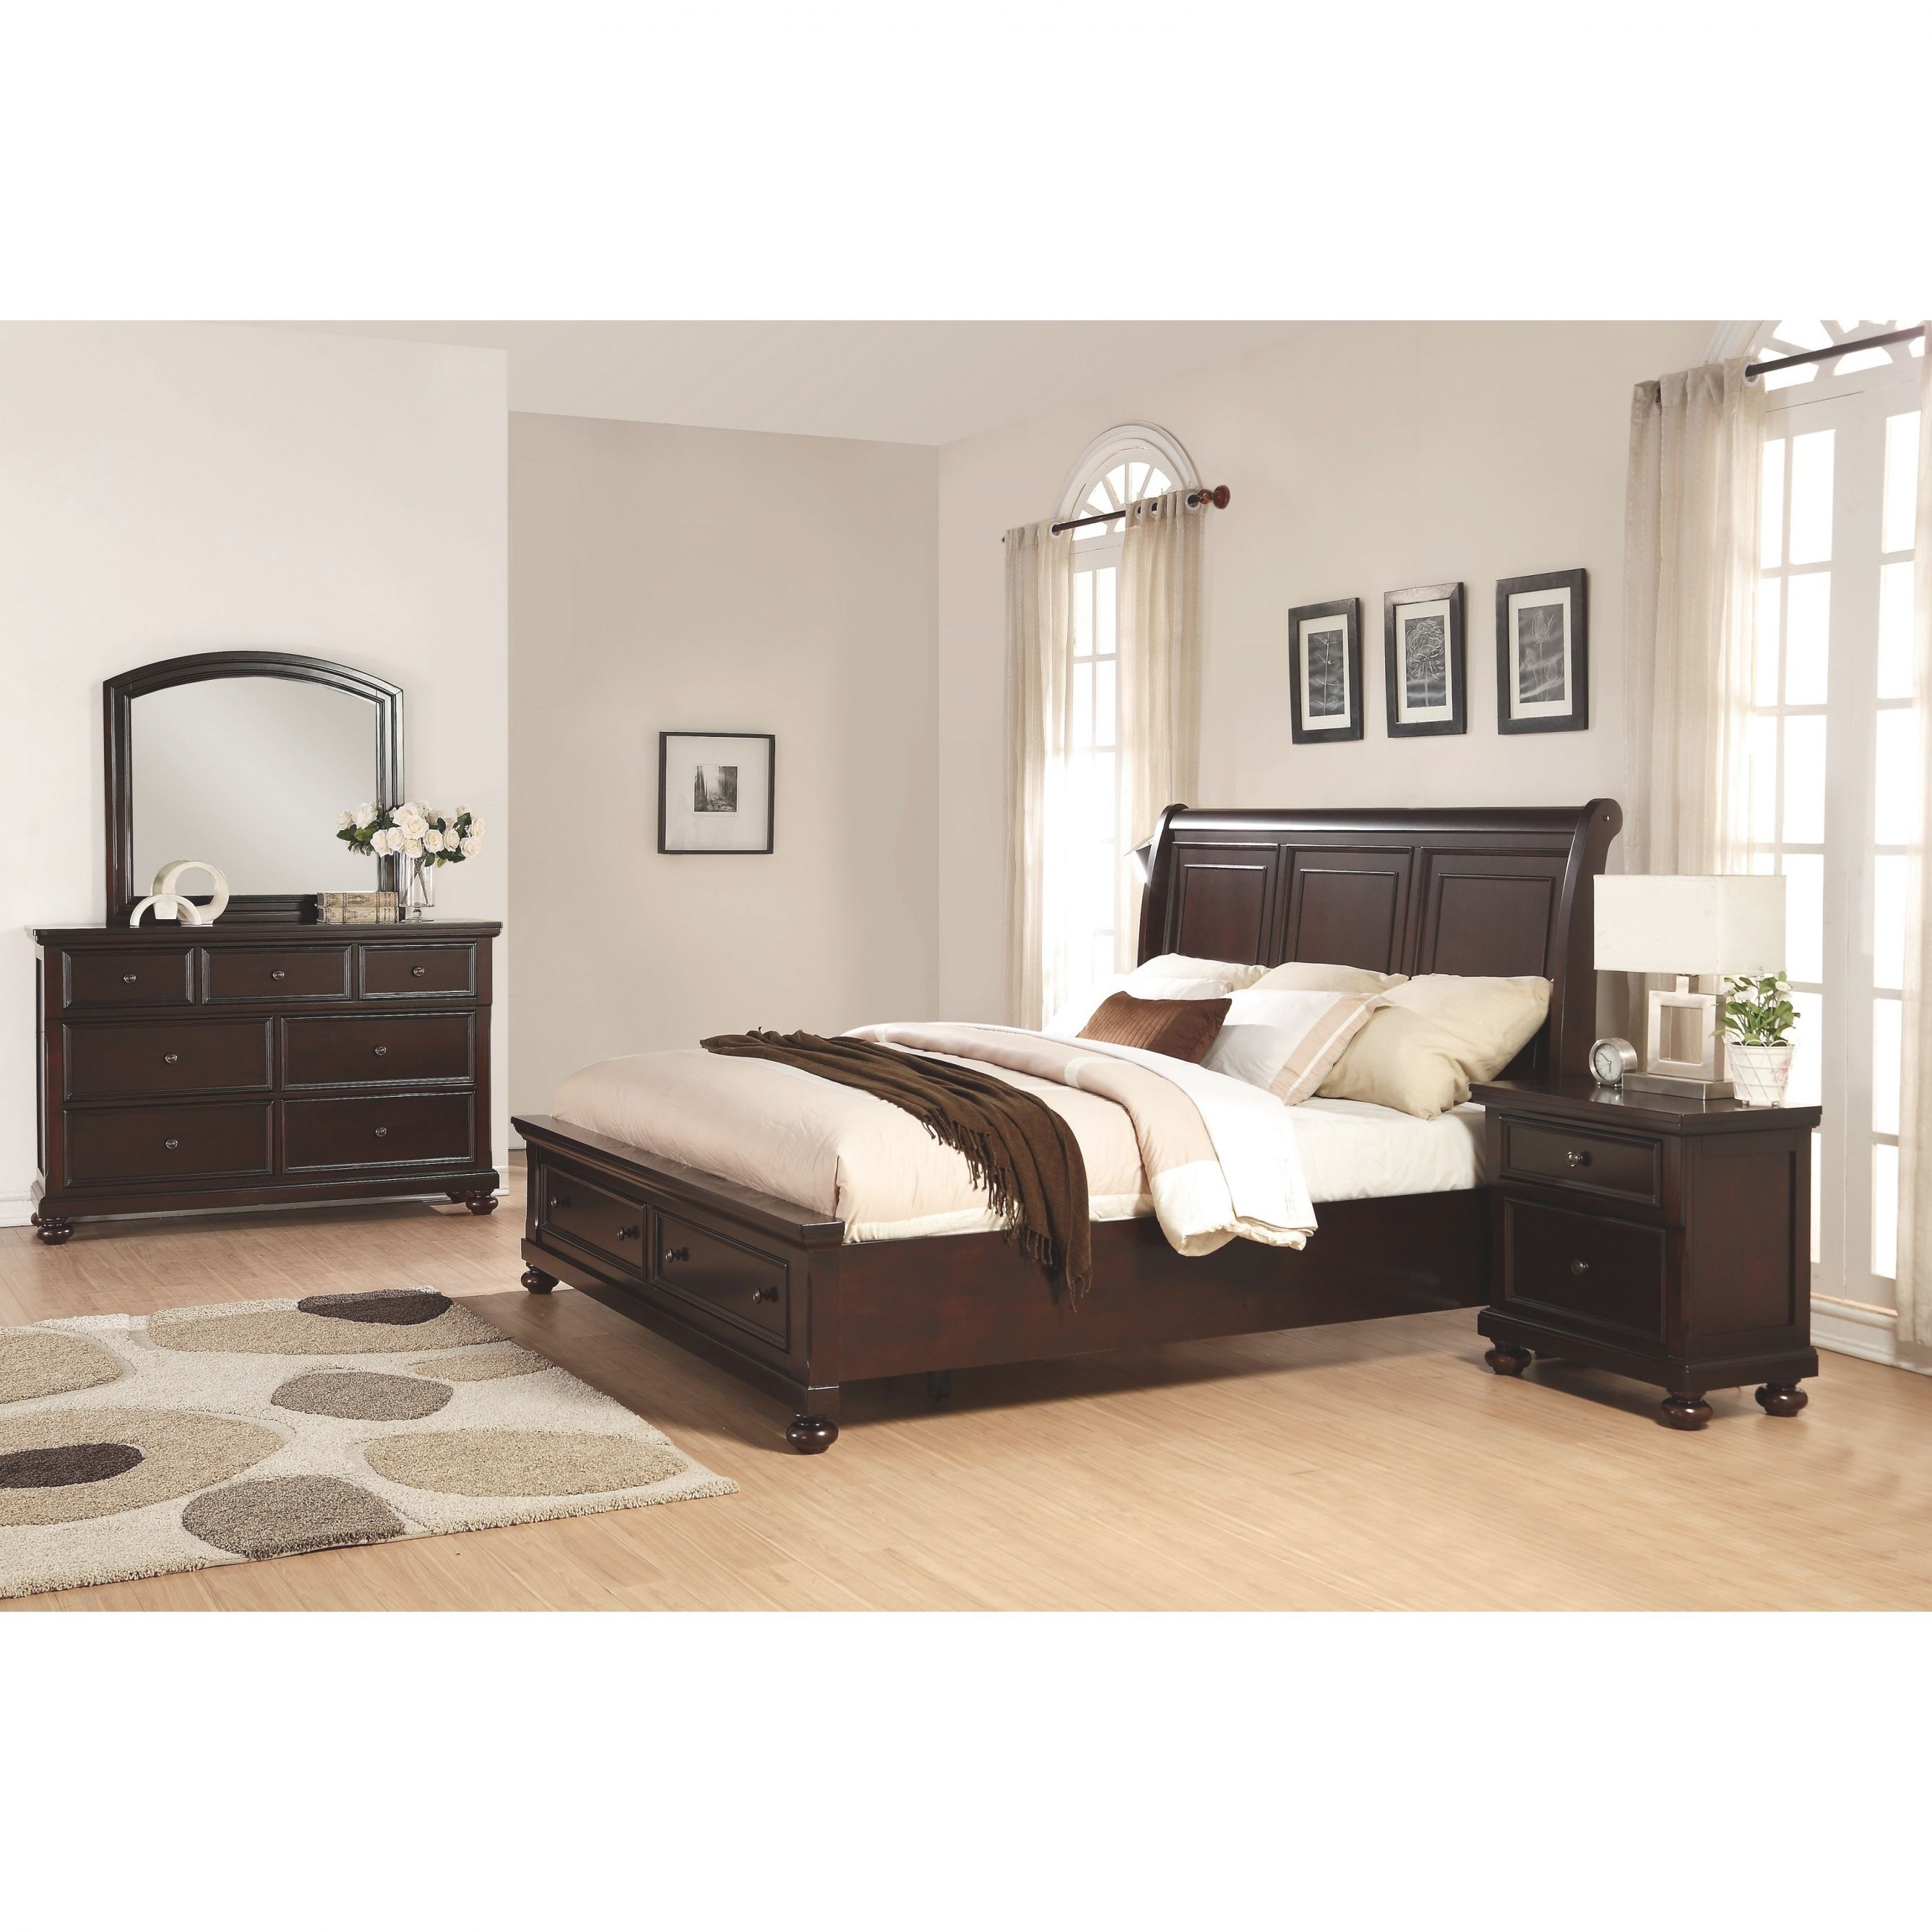 Brishland Rustic Cherry Storage 4-Piece Queen Size Bedroom Set throughout Luxury Bedroom Set Queen Size